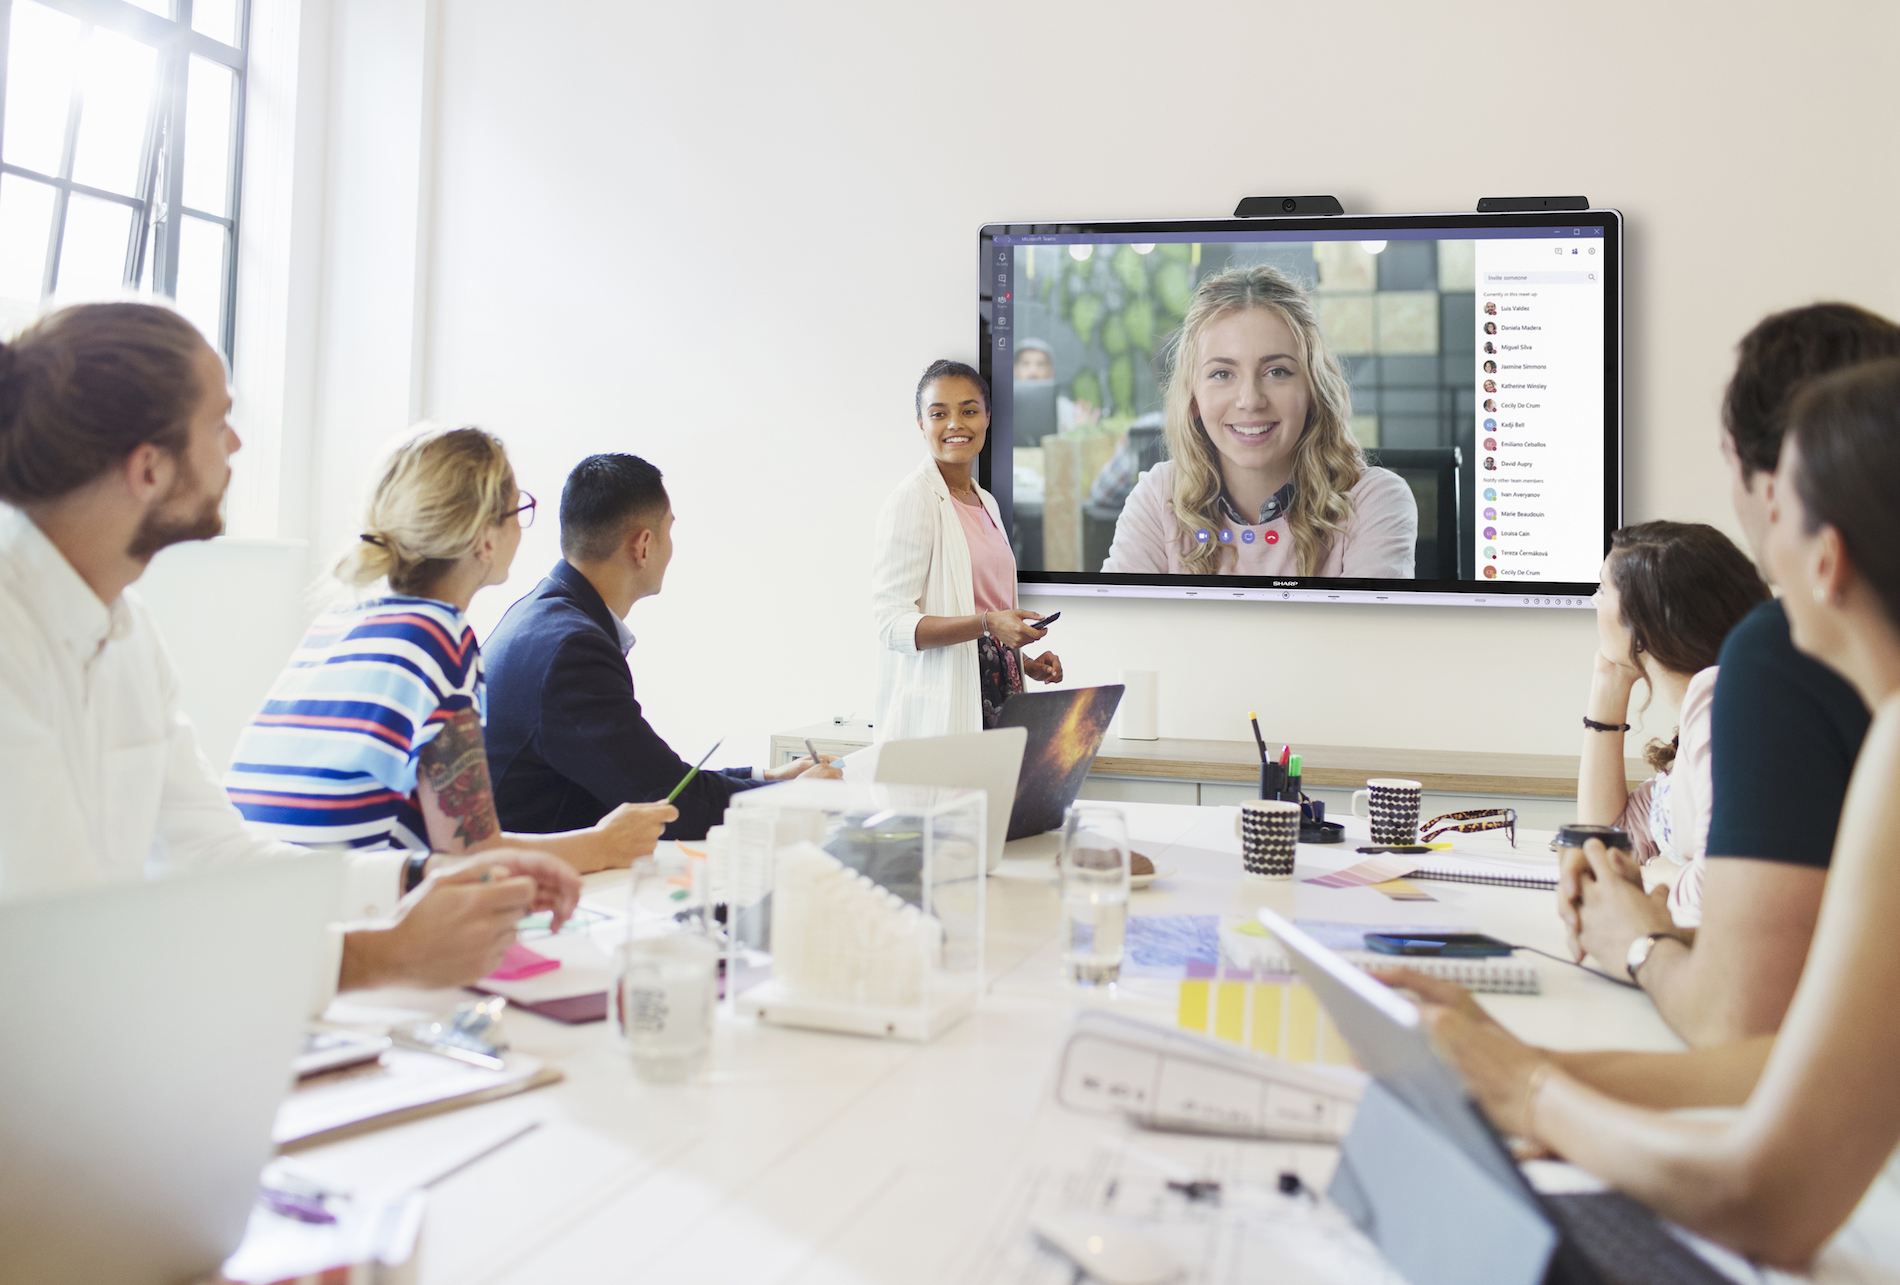 Confident businesswoman at television screen leading conference room meeting